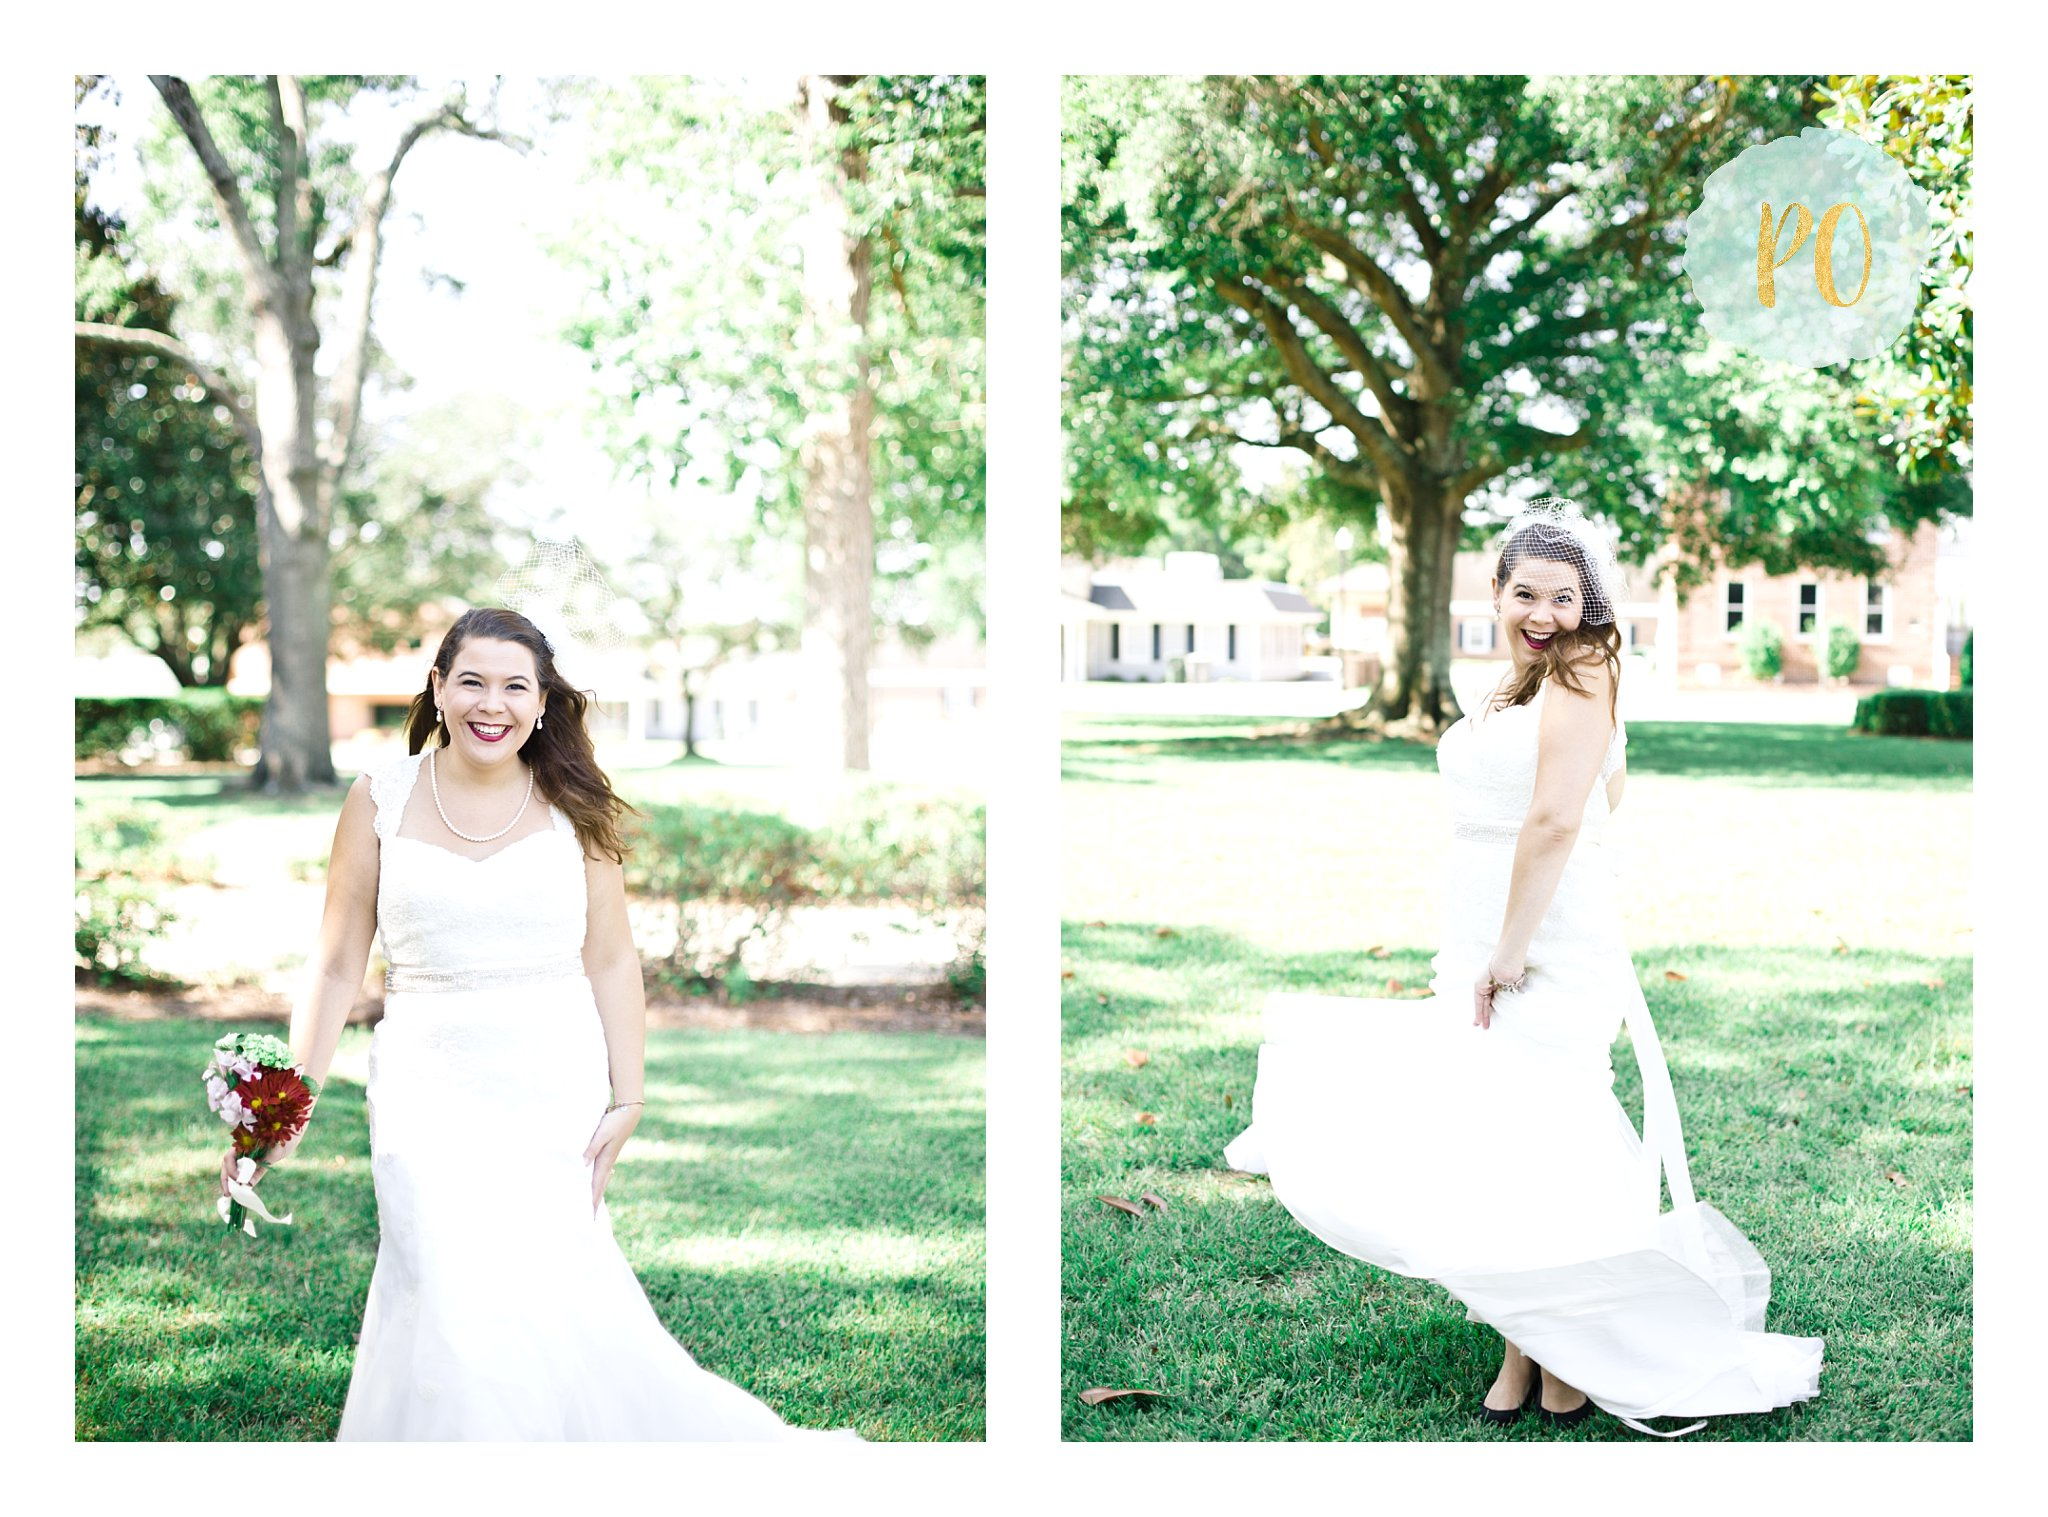 cypress-inn-lowcountry-bridal-session-conway-sc-photos_0144.jpg